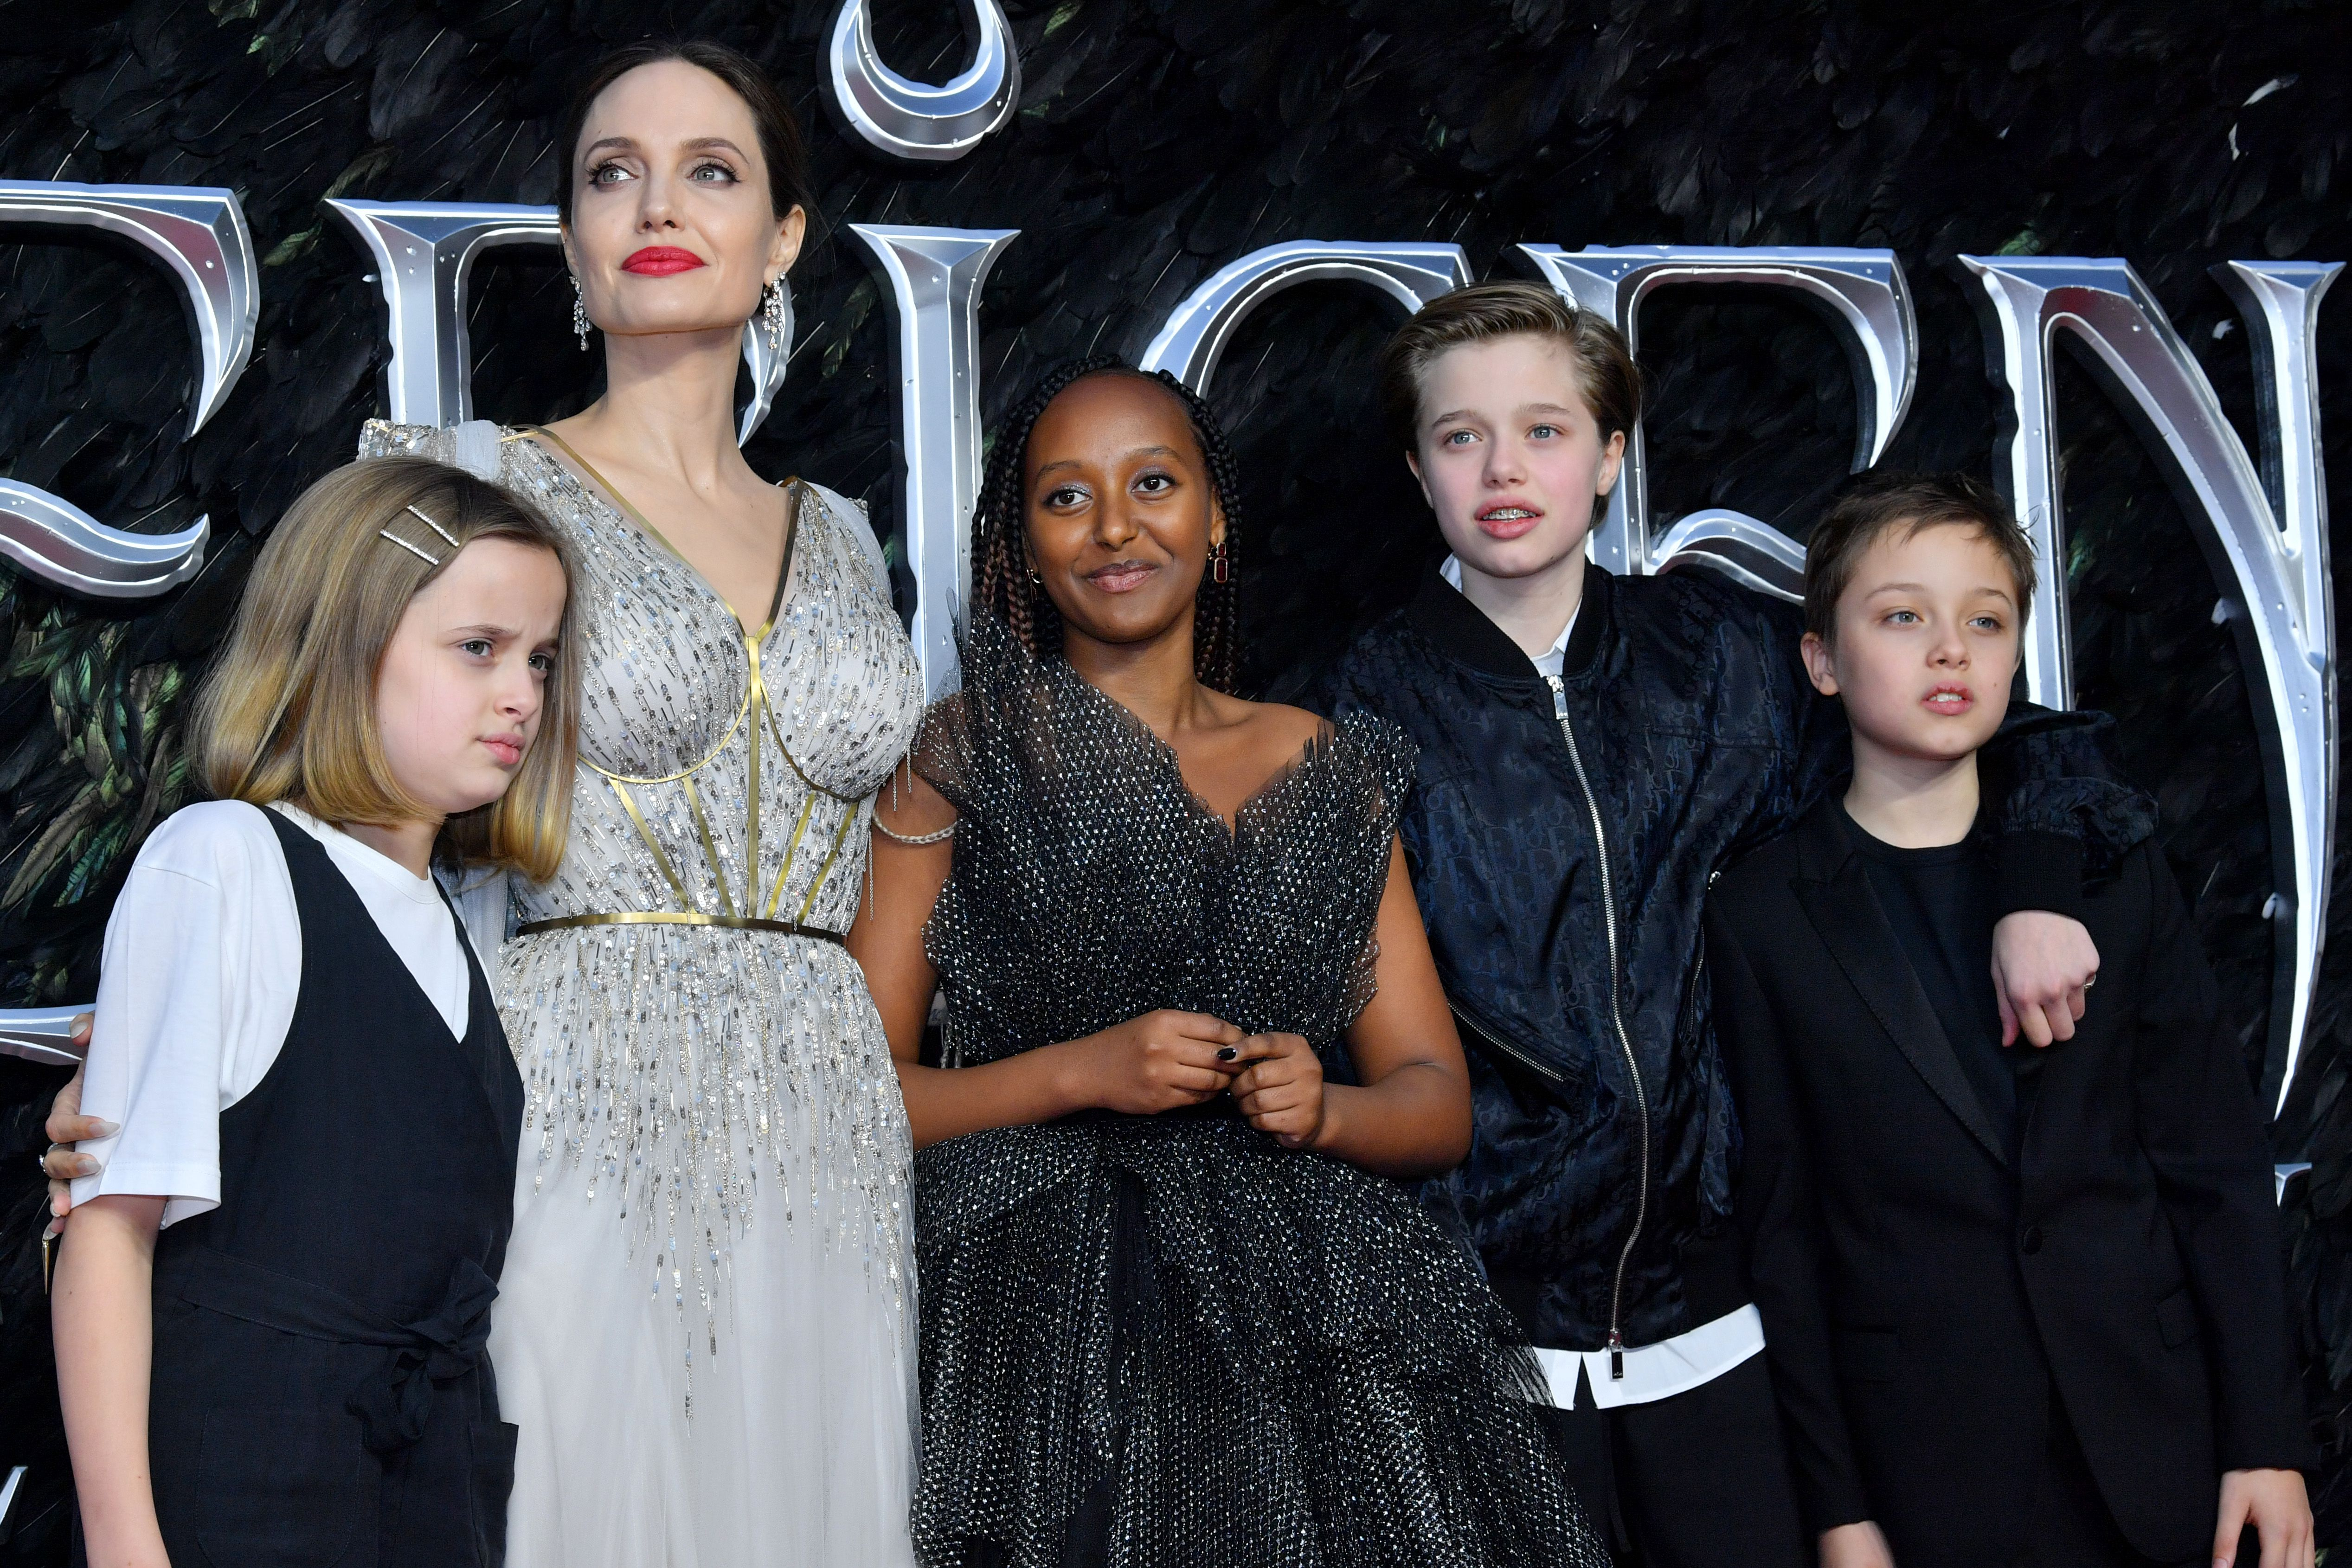 Angelina Jolie And Kids Attend Maleficent 2 Premiere In London